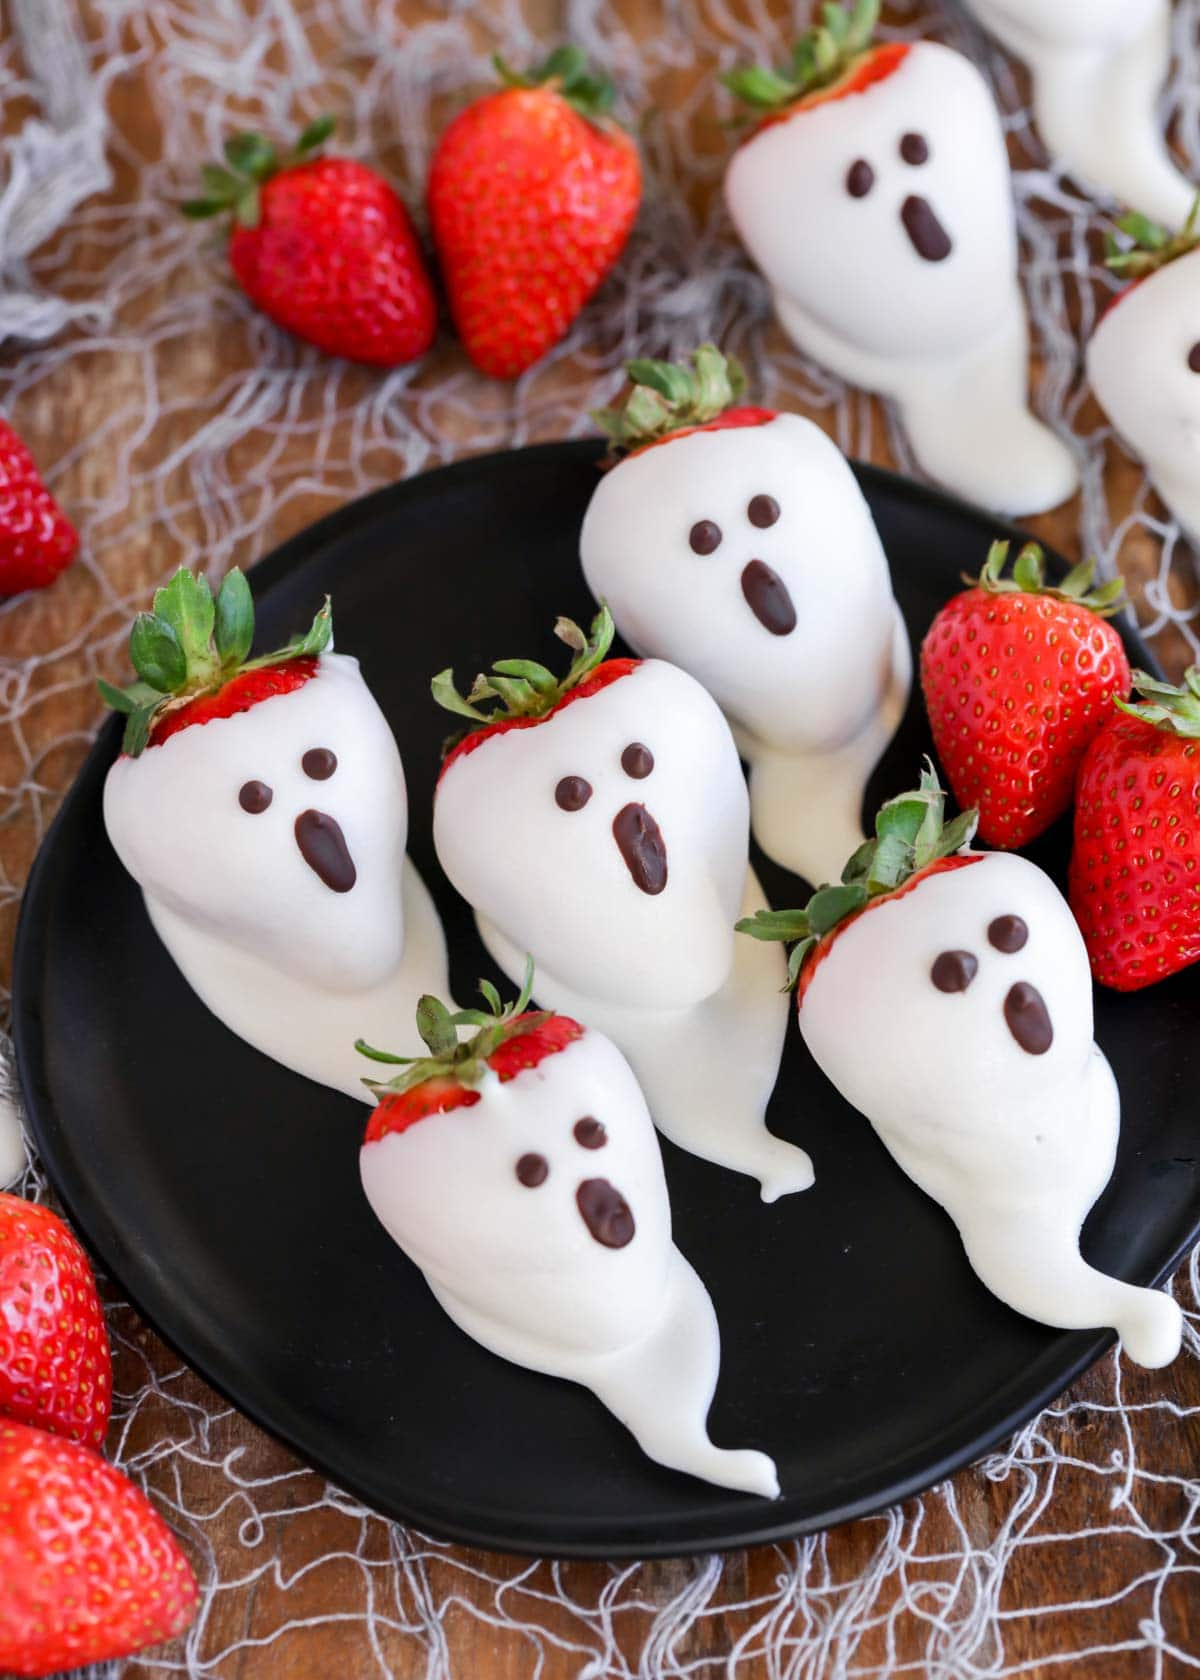 Strawberry ghosts on a black plate